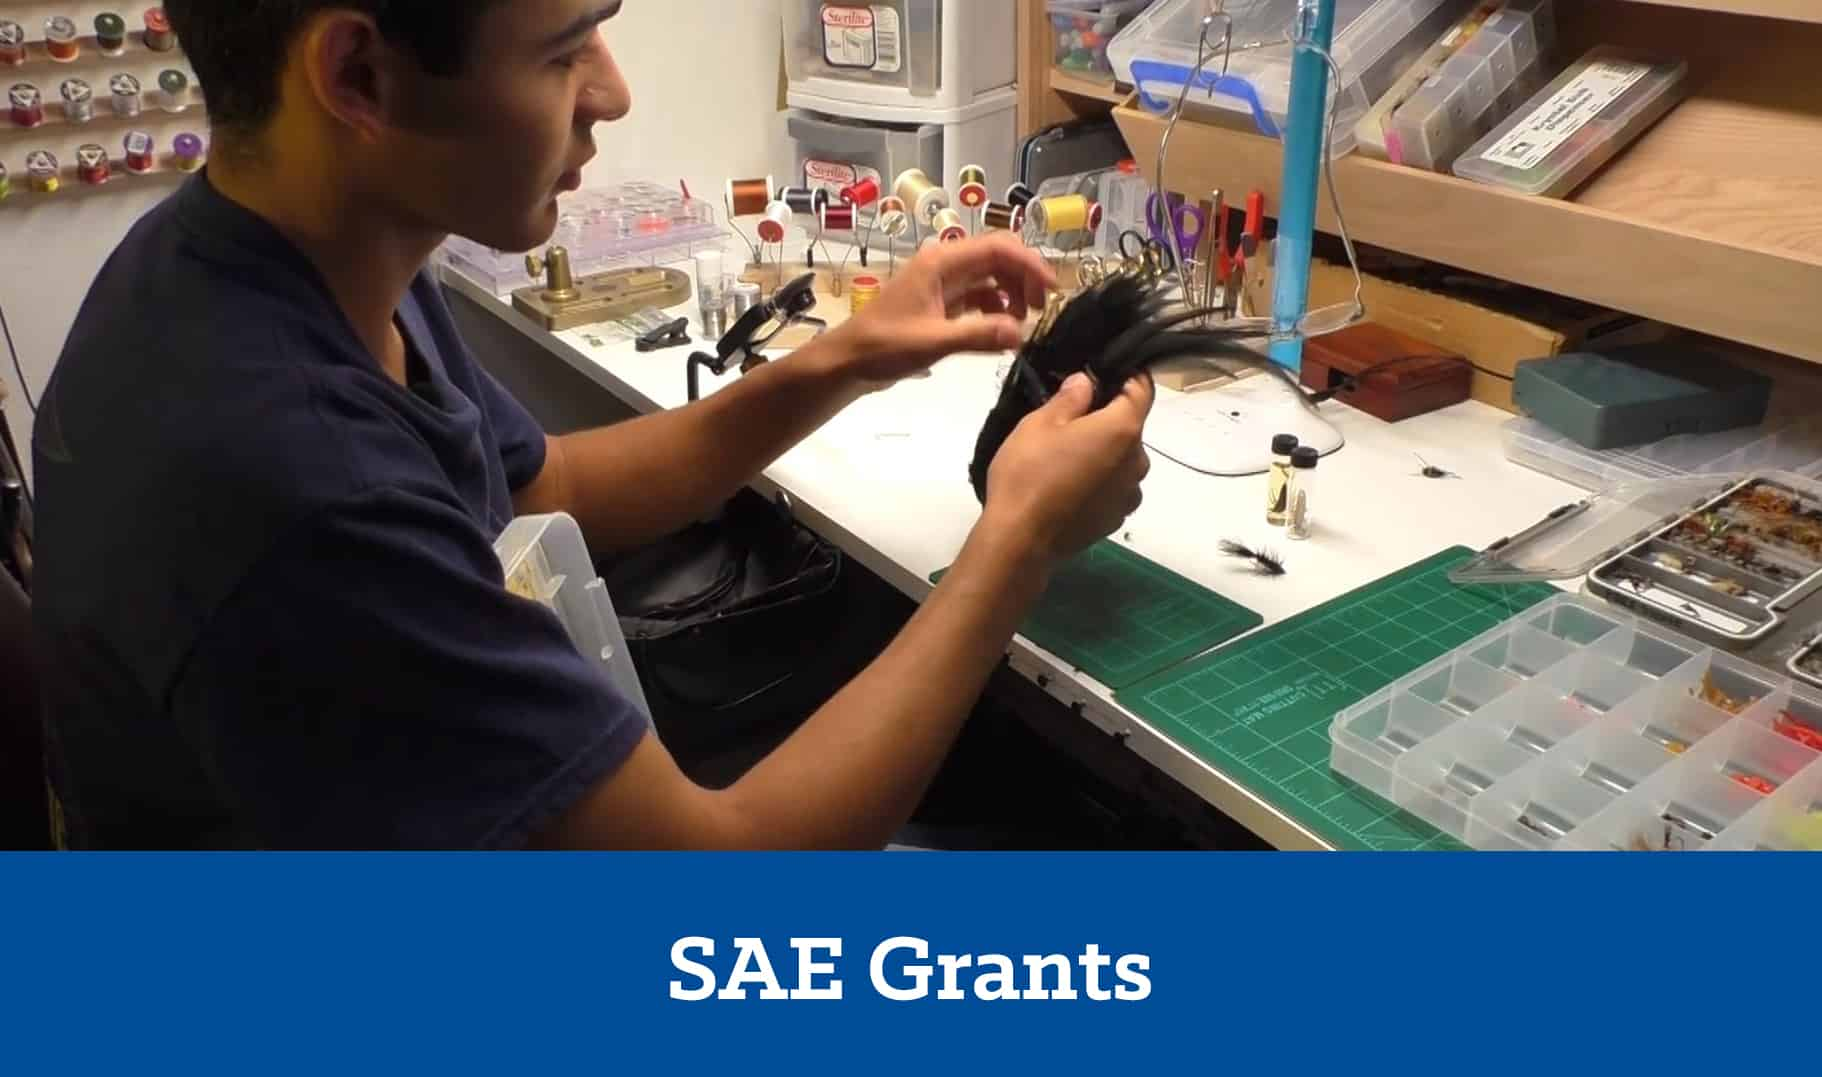 SAE Grants - Application Center